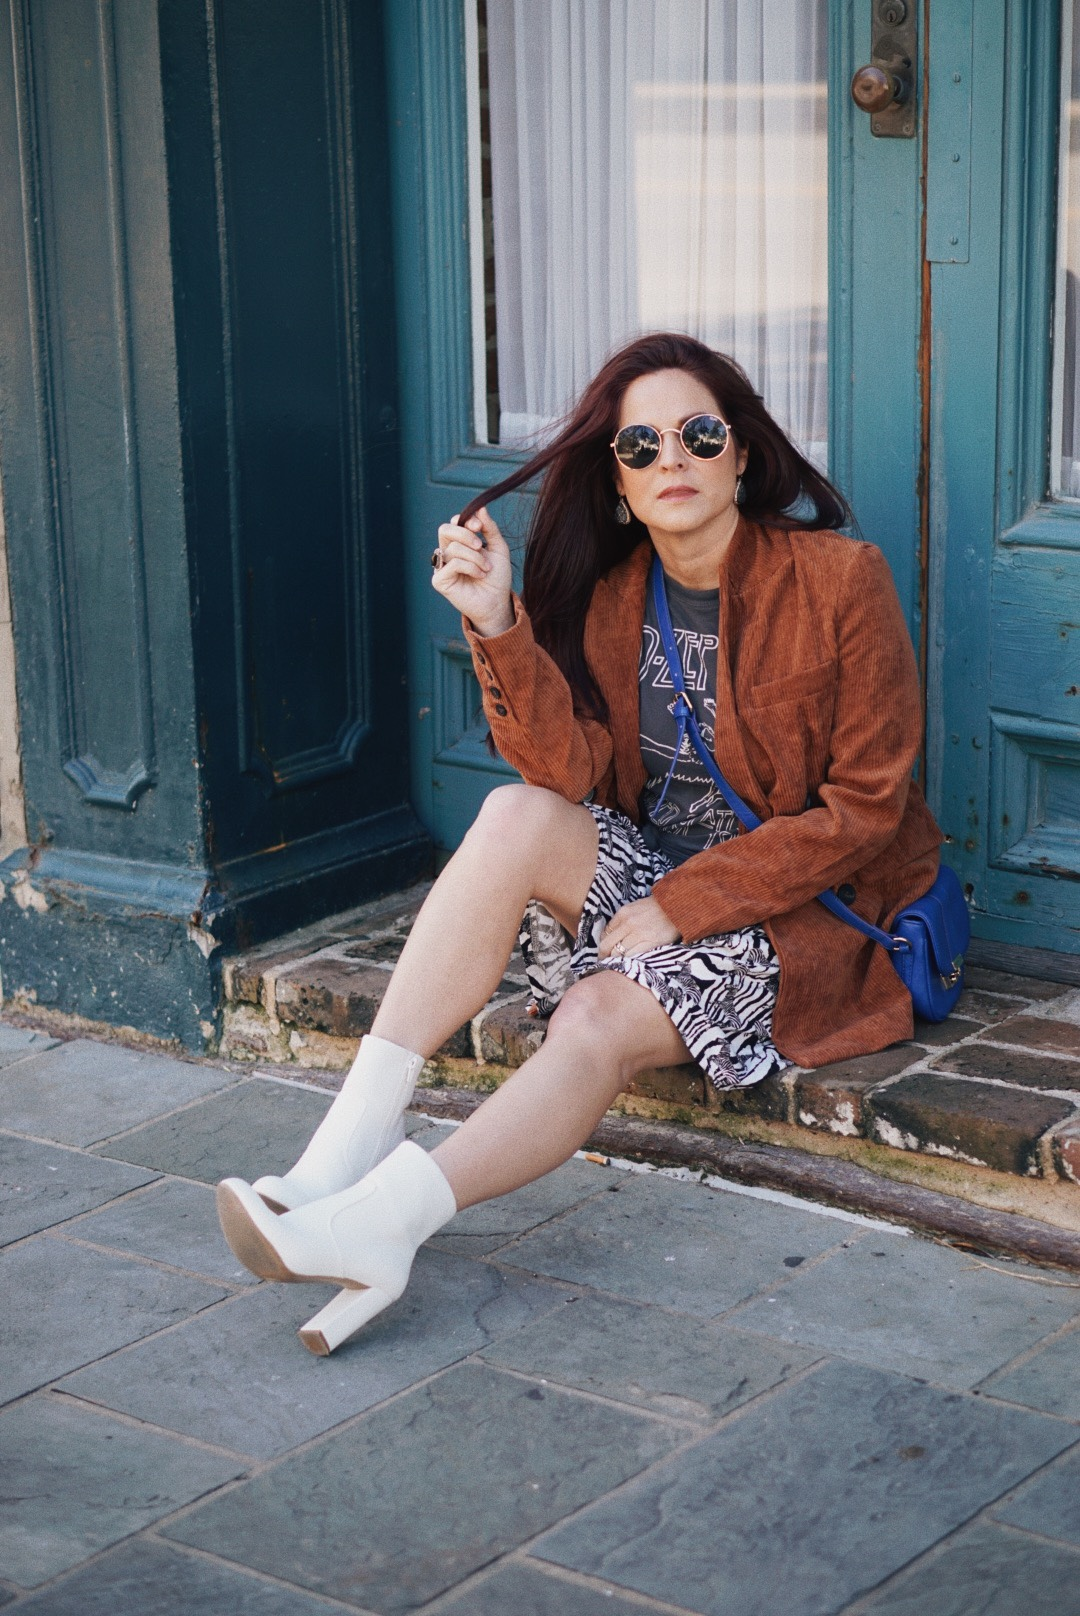 rust corduroy outfit ideas, animal print outfits, white block heeled boots, blue bag outfits, band tshirt outfits